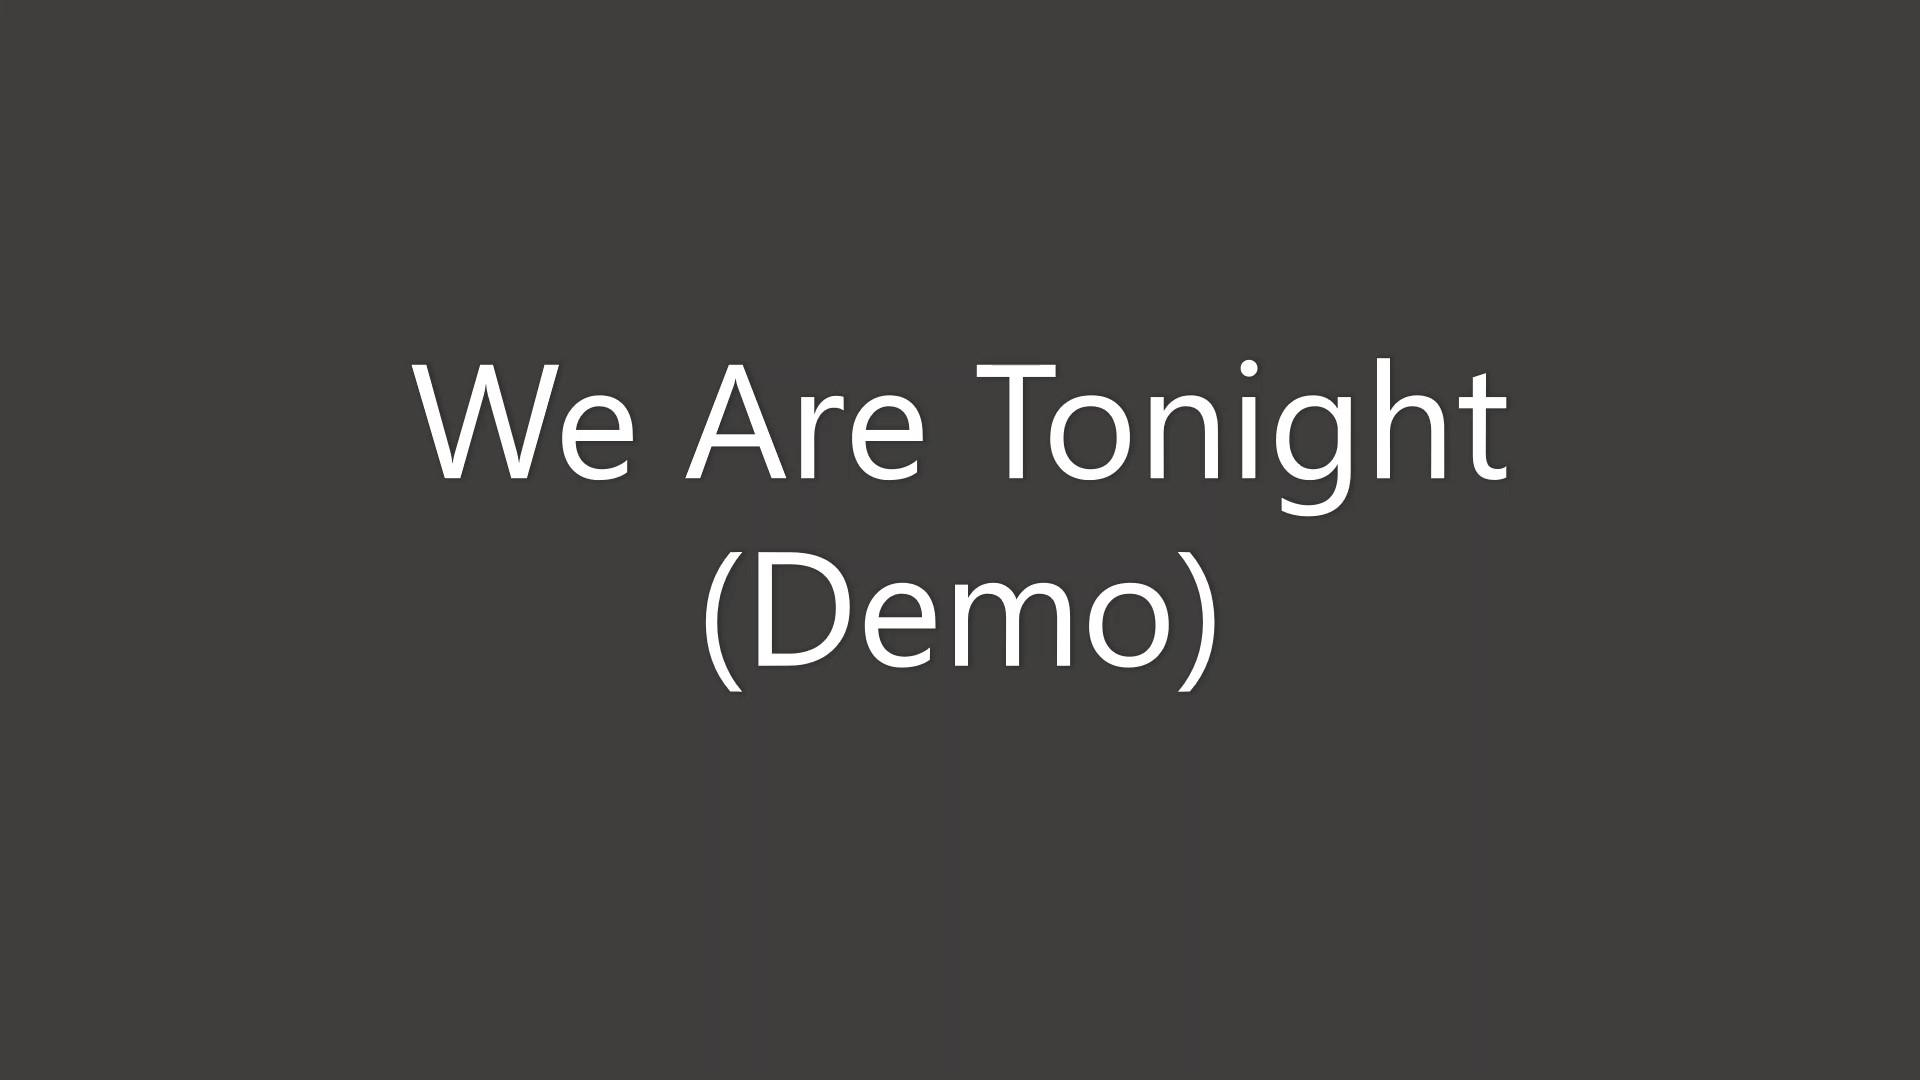 We AreTonight Demo